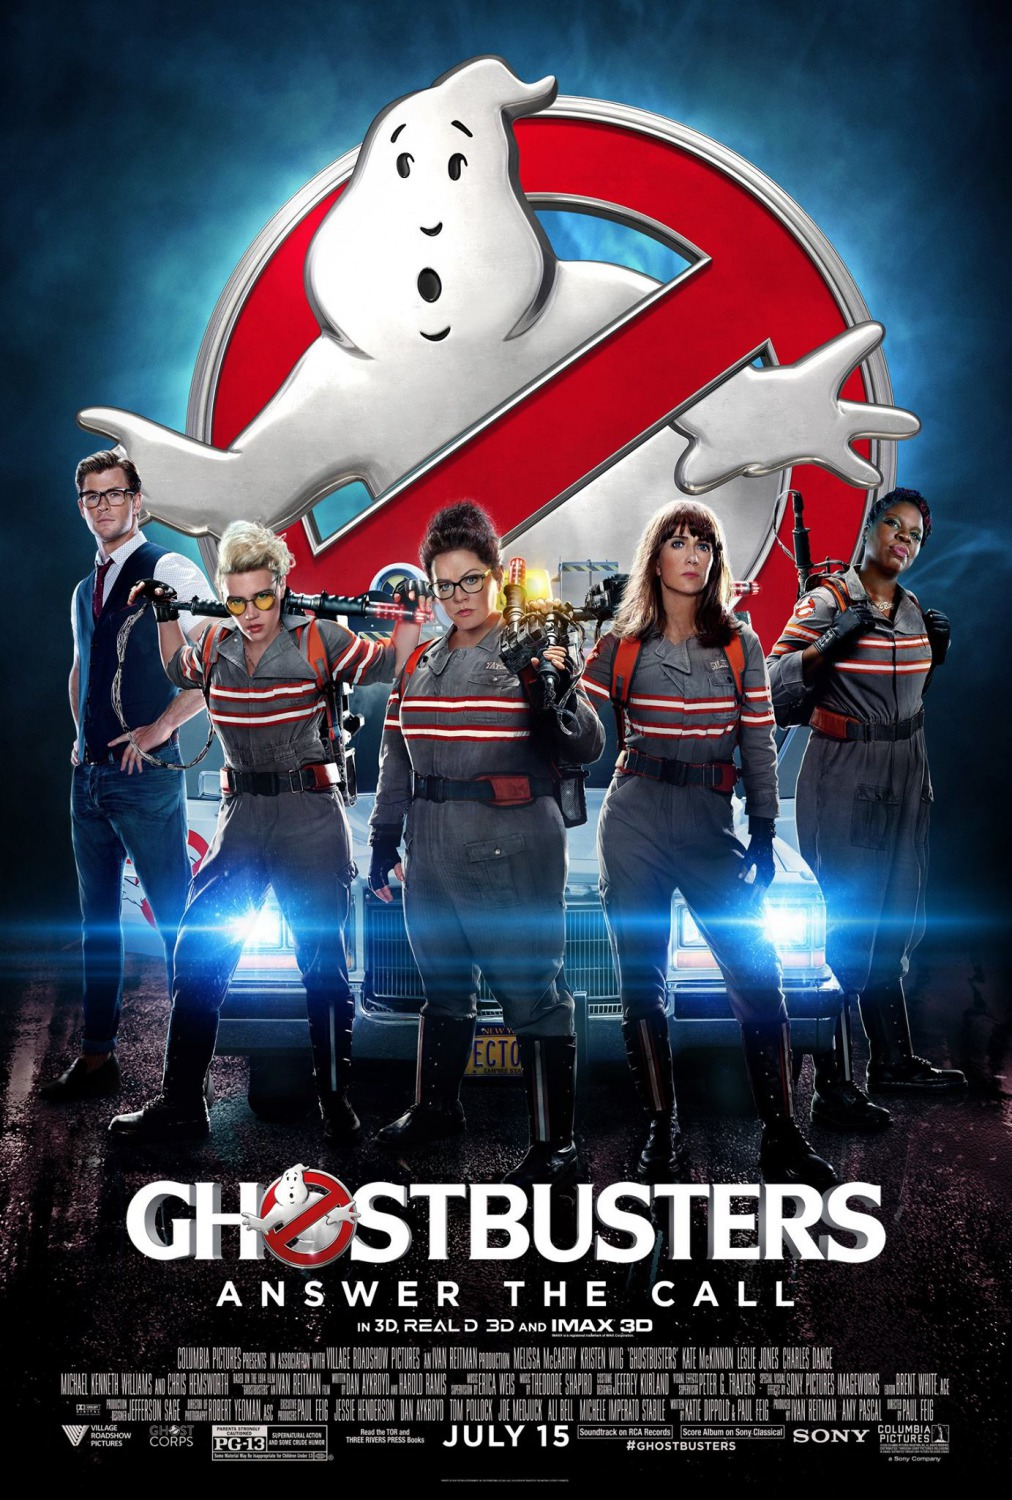 6 - Ghostbusters